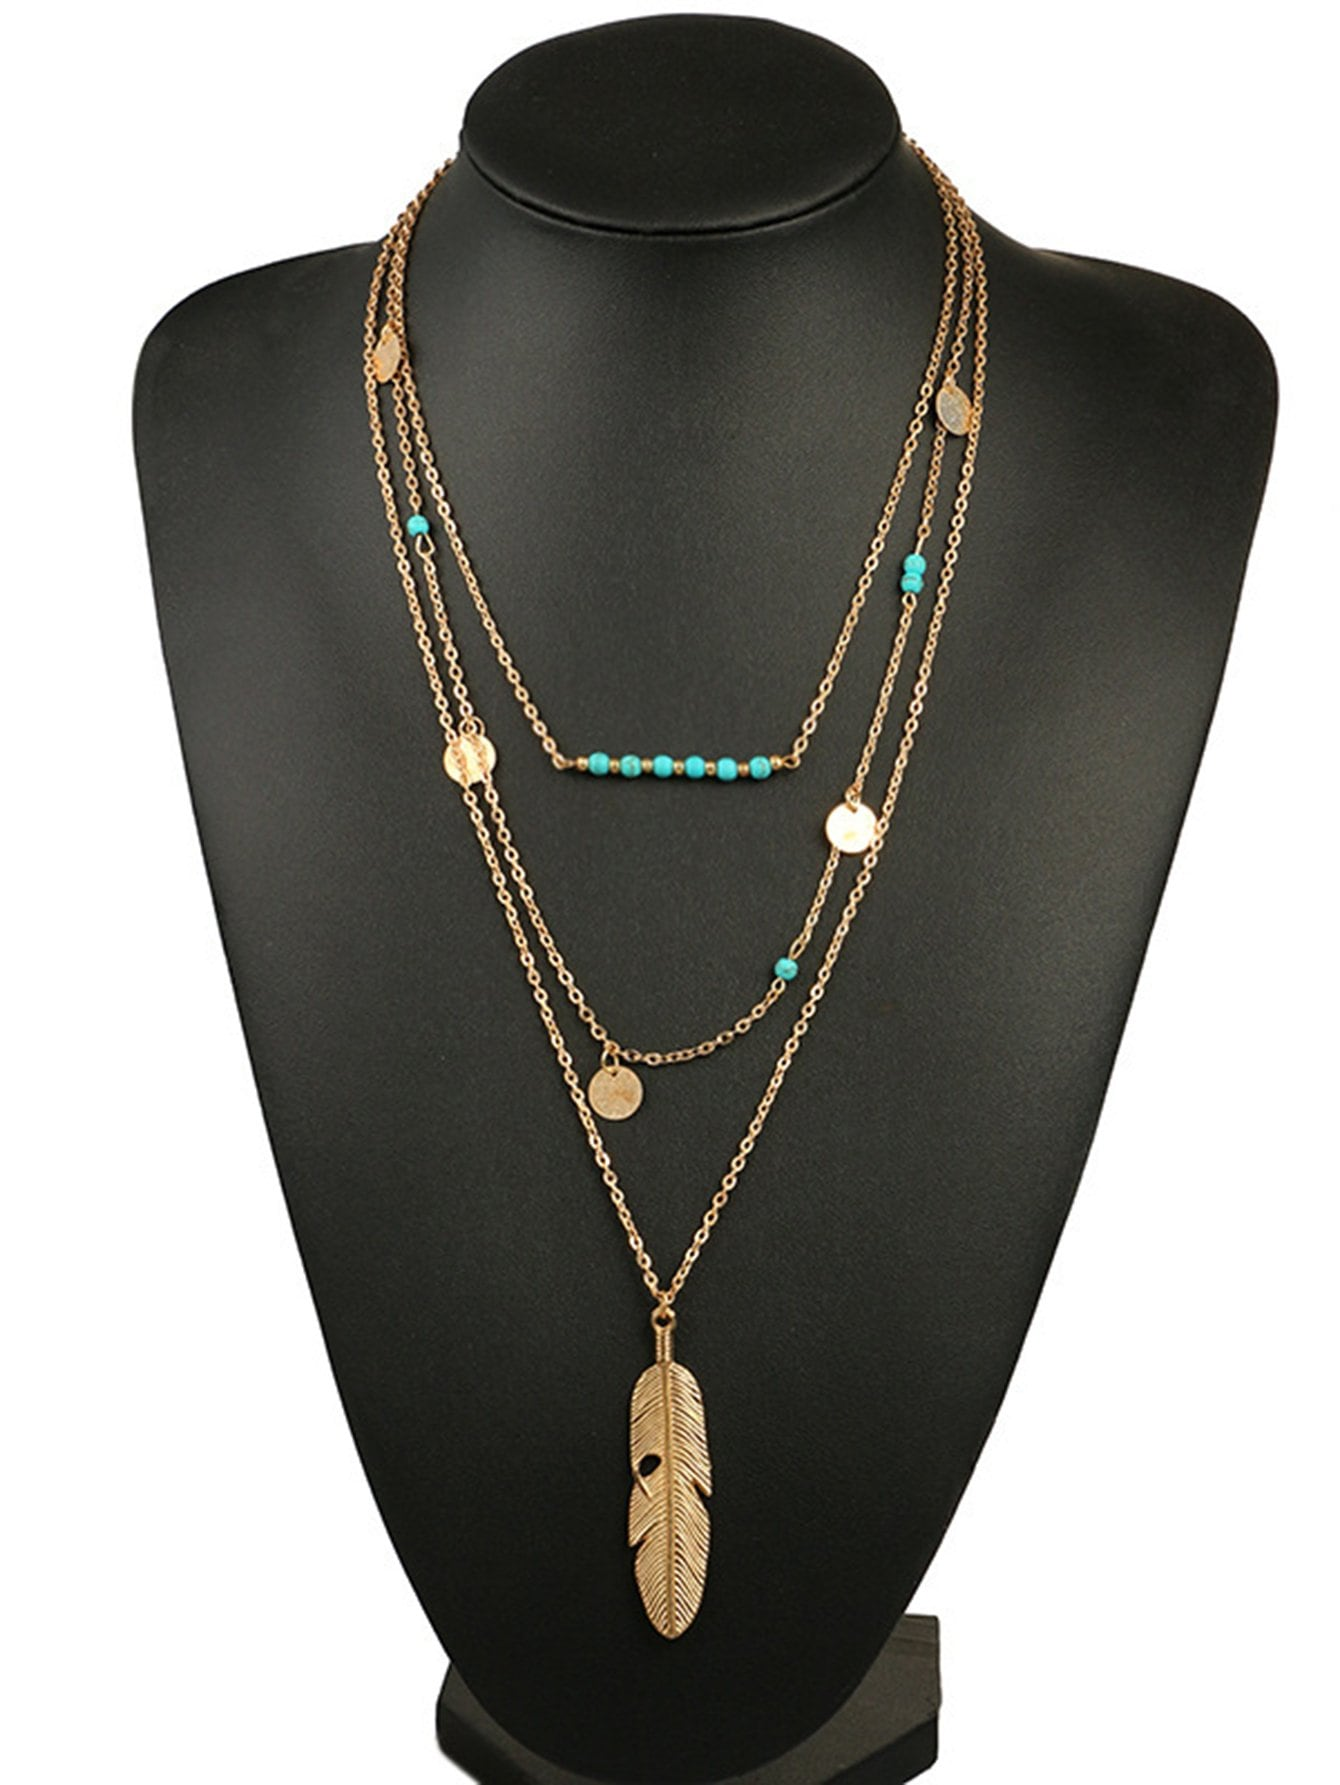 Feather Pendant Layered Chain Necklace cross pendant layered chain necklace